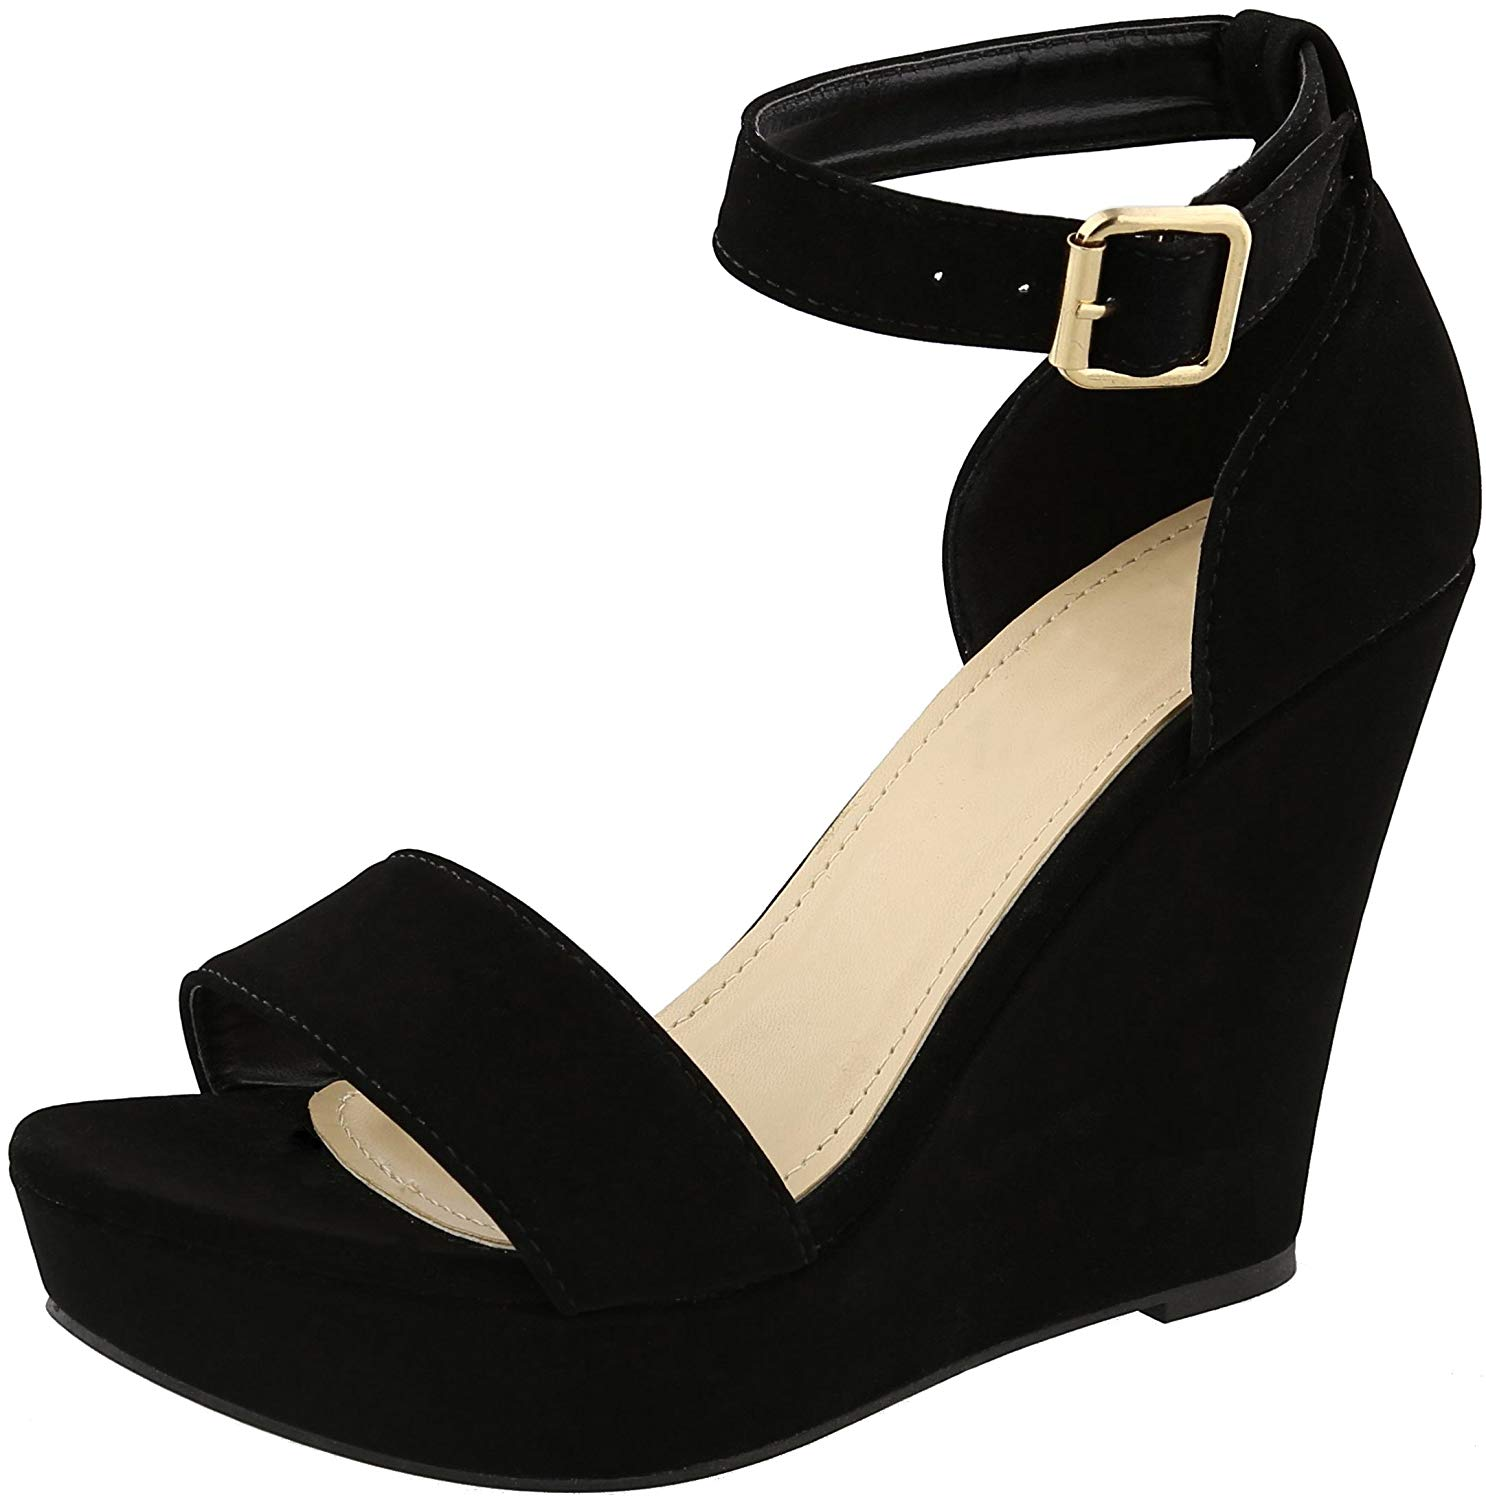 5587cc2254b Get Quotations · Cambridge Select Women s Single Band Buckled Ankle Strap  Open Toe Platform Wedge Sandal